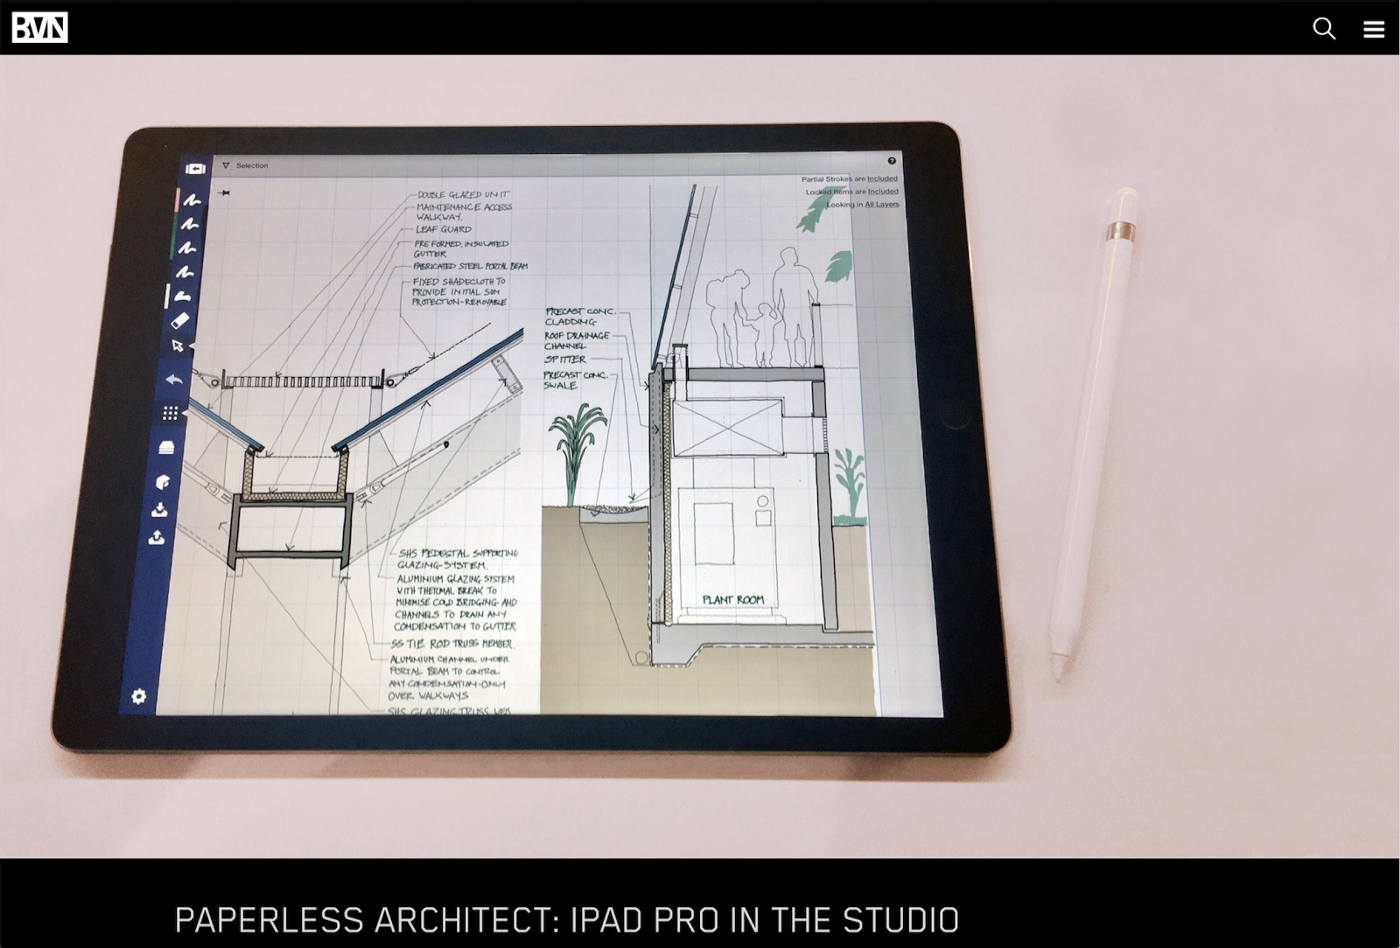 The Design Life of a Paperless Architect - Concepts App - Medium